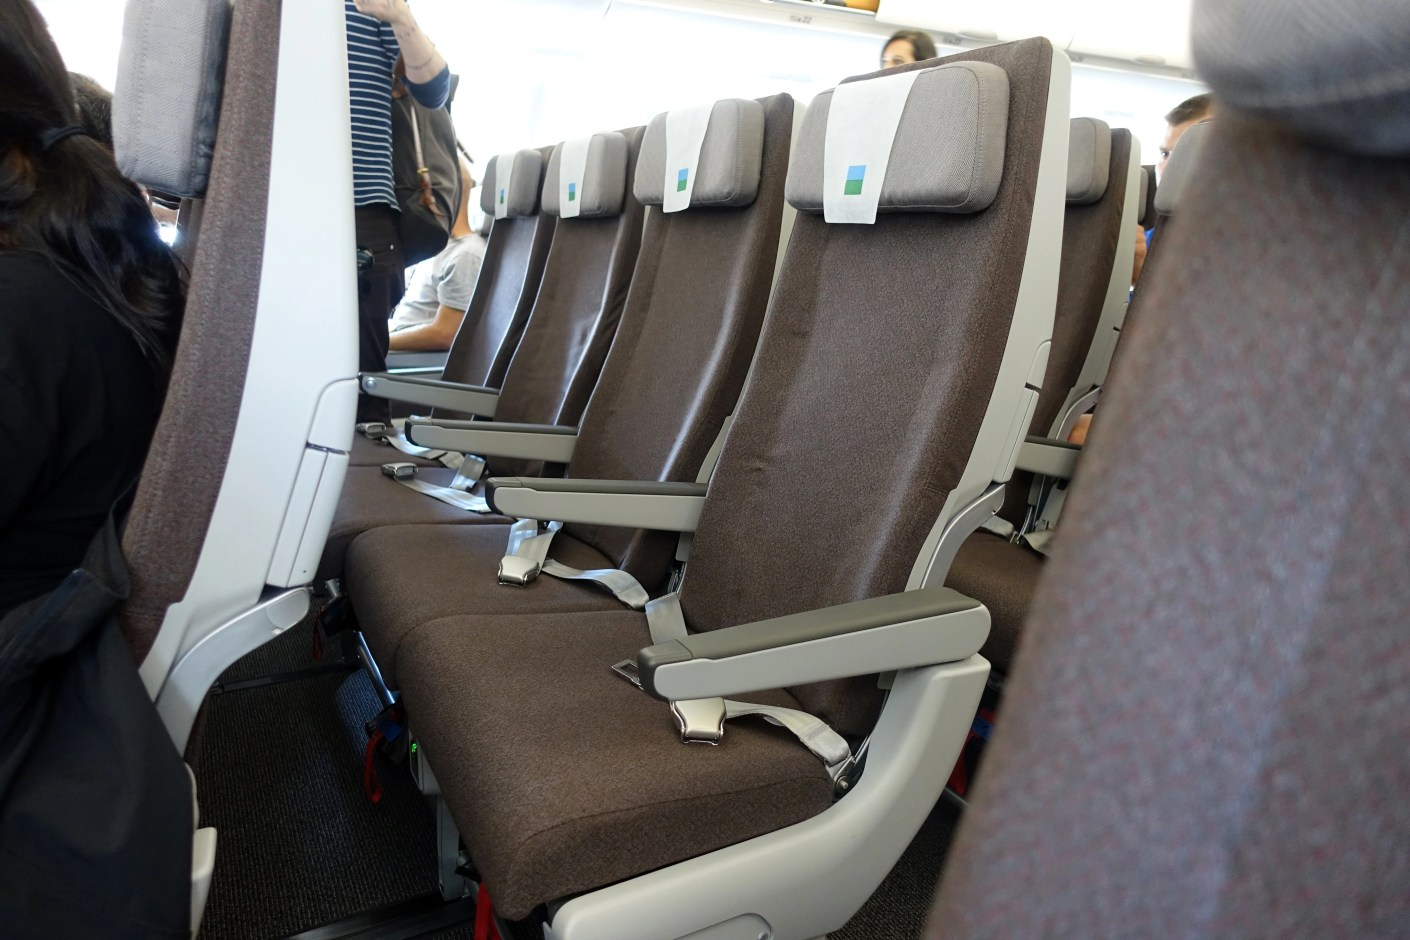 Flight Review: LEVEL (A330-200) Economy, Barcelona to LAX